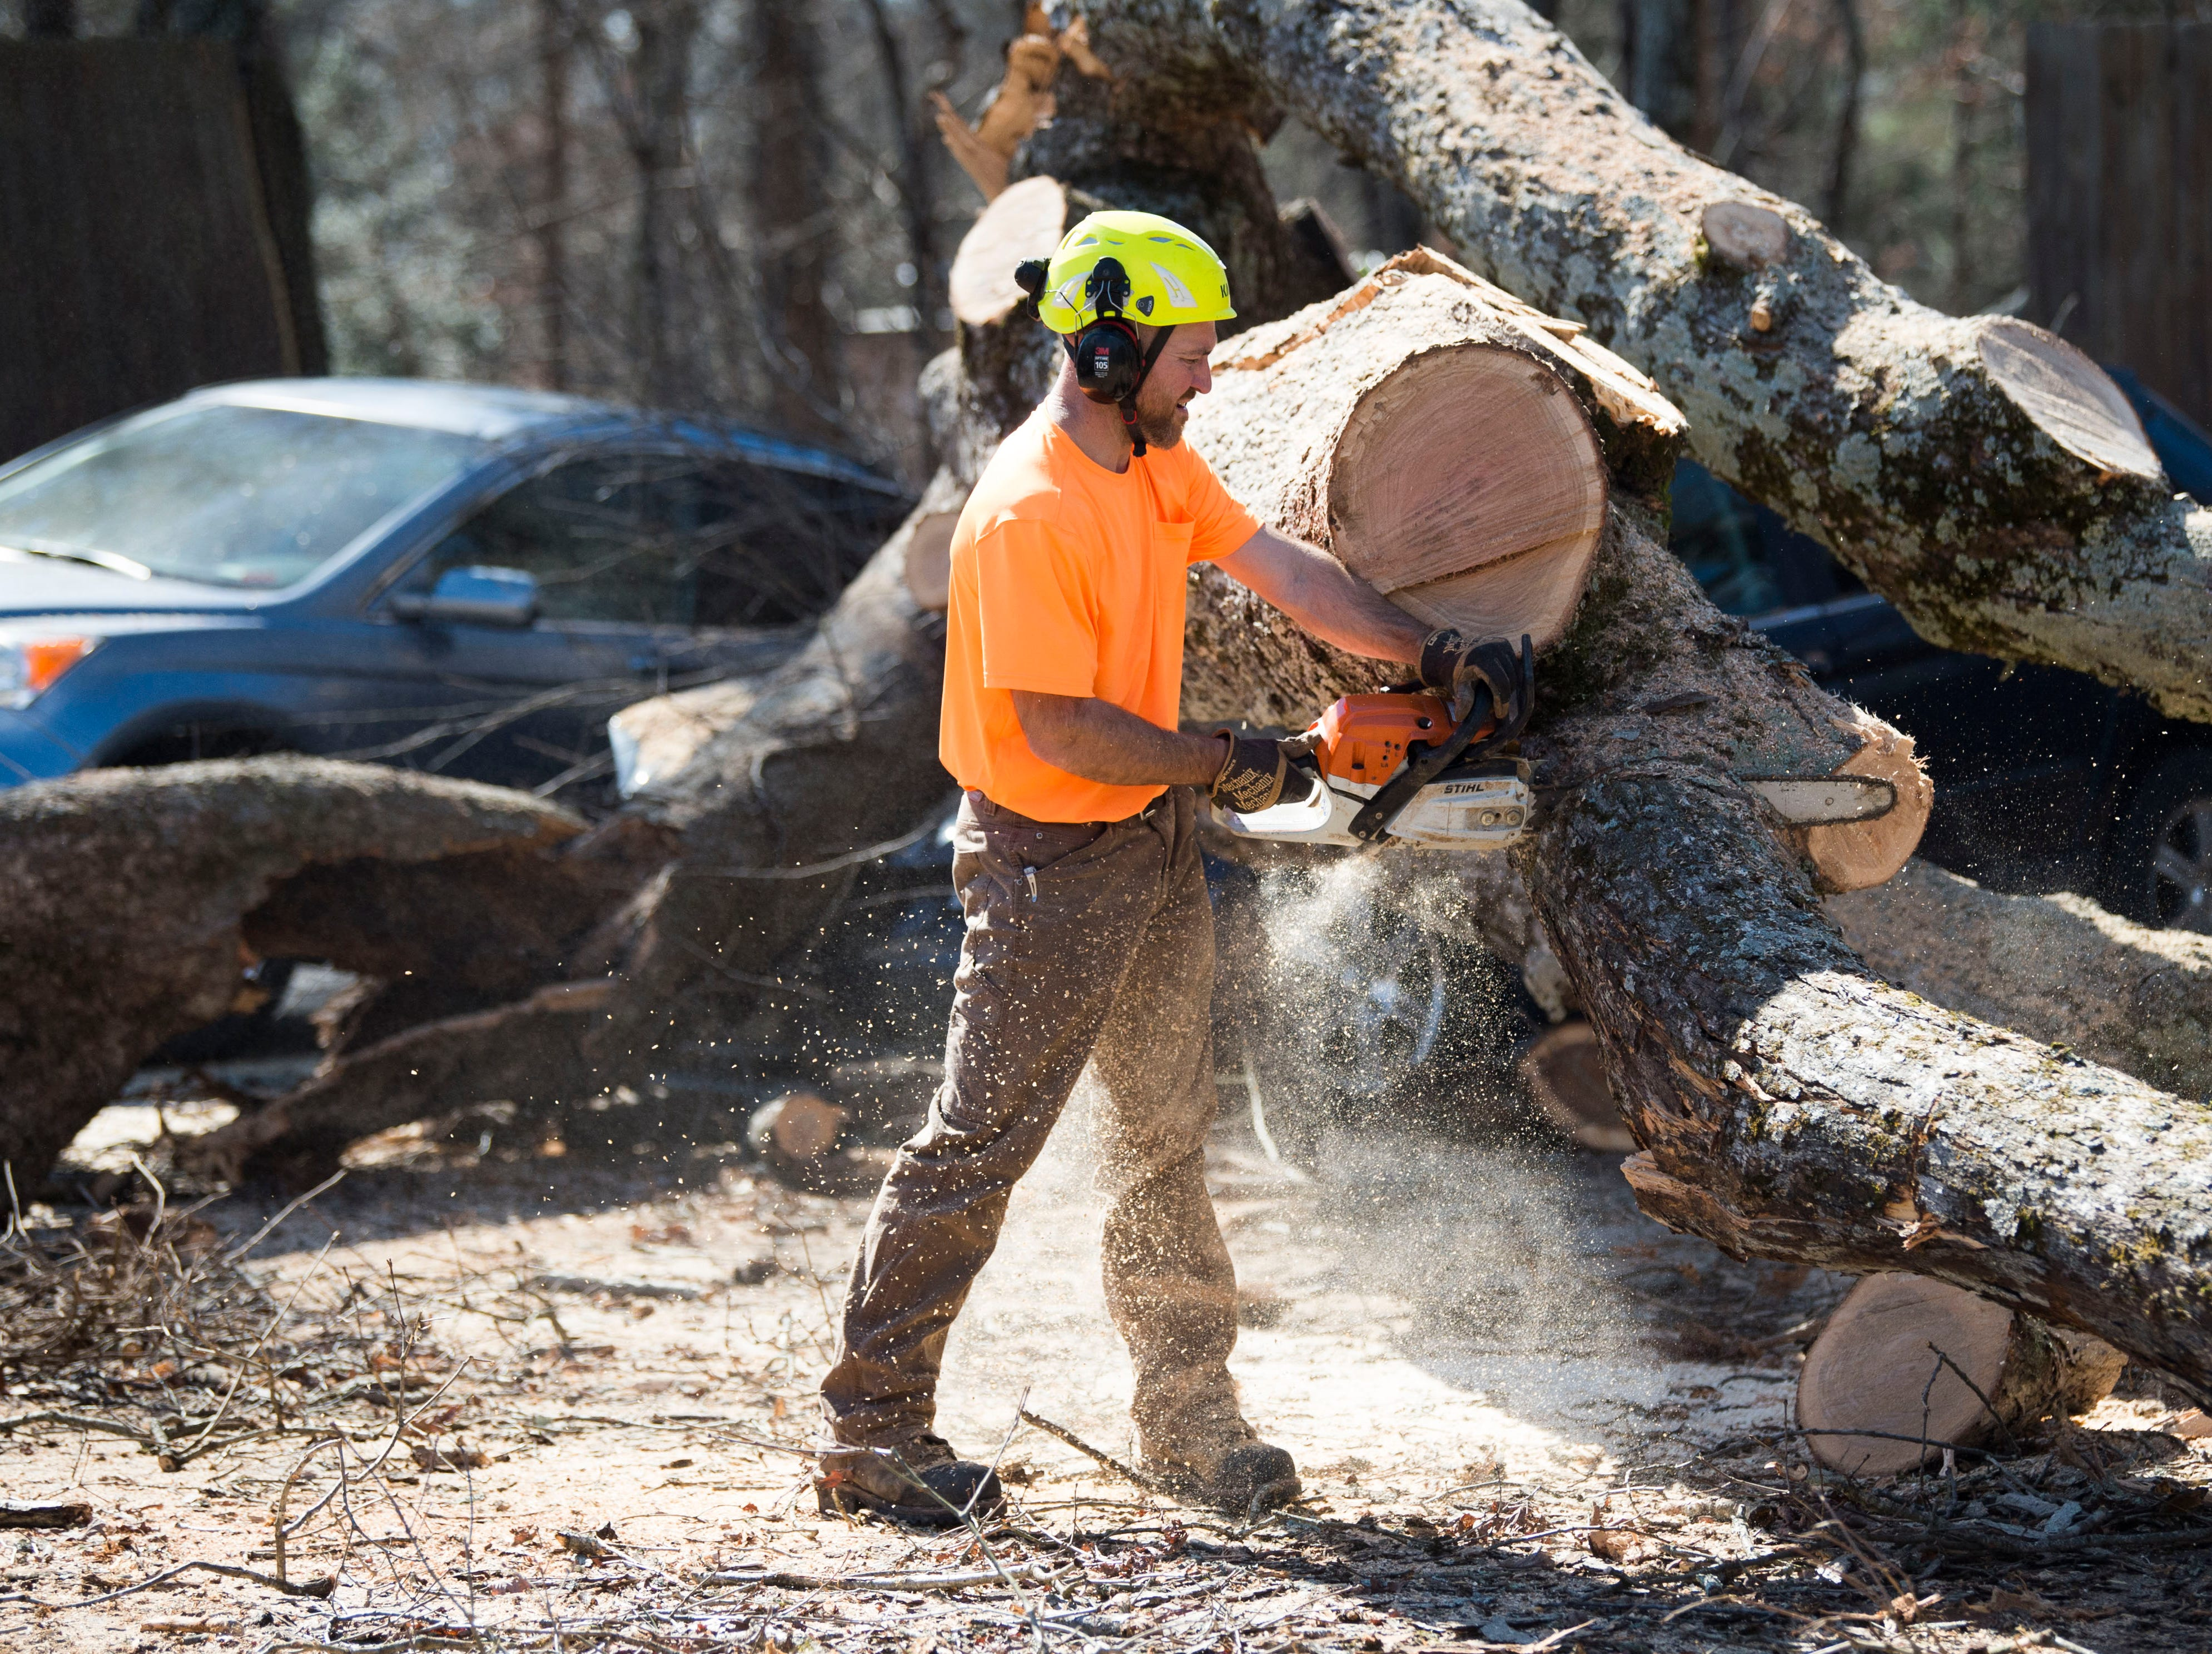 Jason Stiltner of Big Orange Tree takes a chainsaw to a tree which fell on cars during a church service at Fellowship Church Knoxville on Middlebrook Pike Sunday, Feb. 24, 2019. More than twenty cars were affected by the fallen tree.